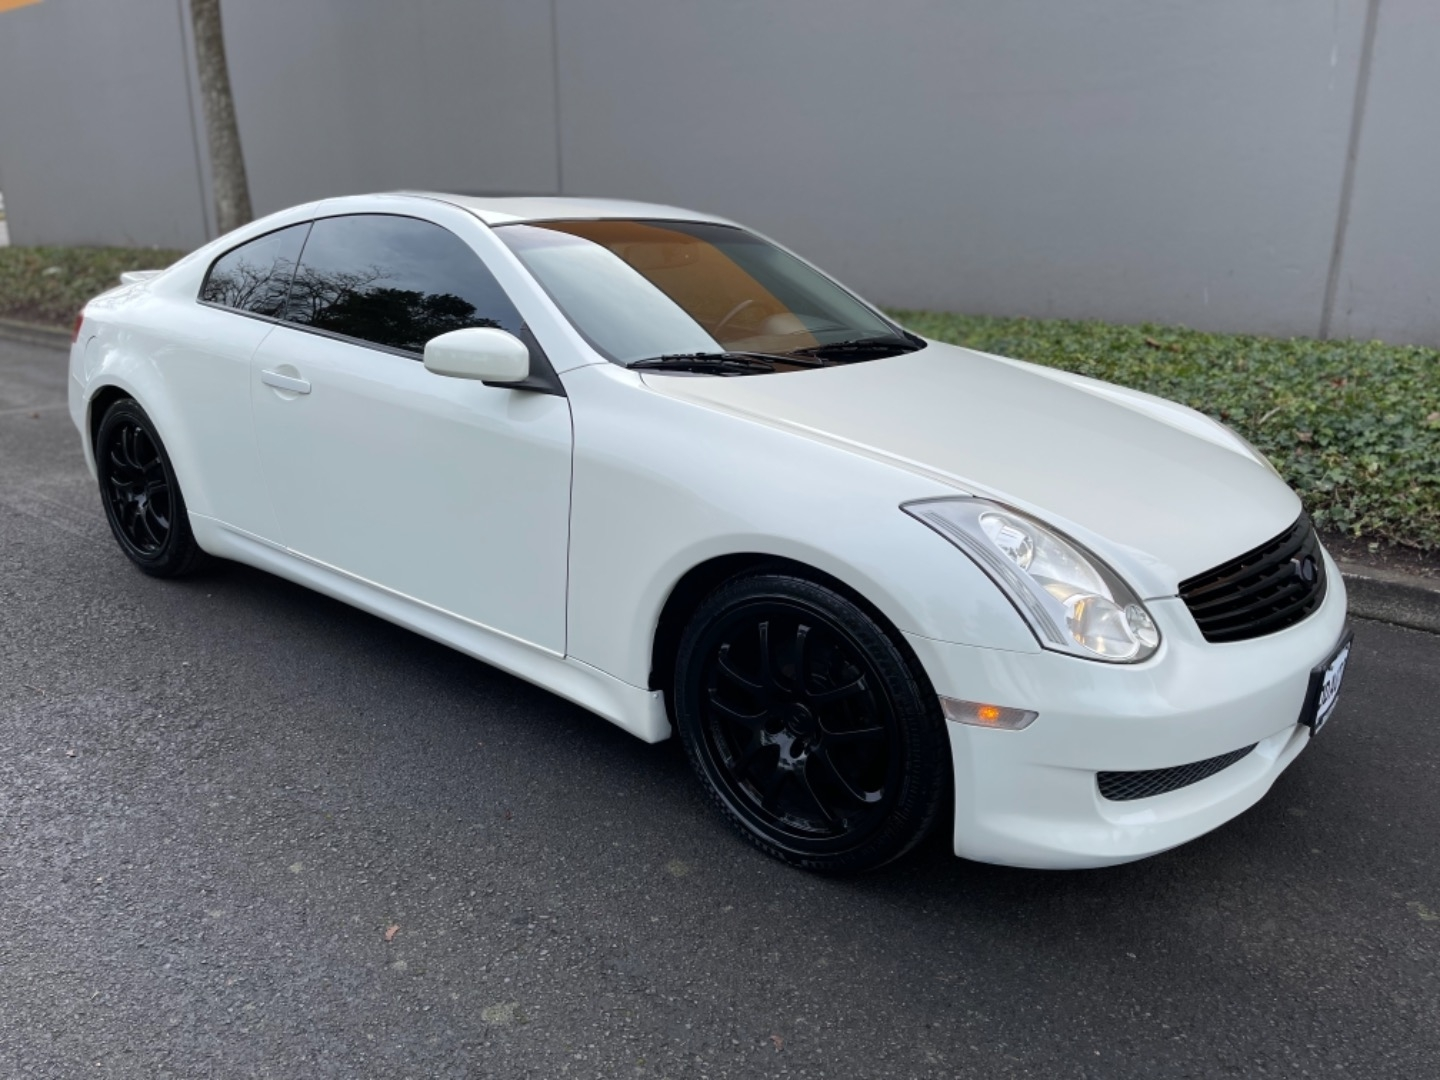 2006 Infiniti G35 Sport 2dr Coupe 6 Speed Manual Clean Carfax G35s G37 G37s Jd Auto Pdx Llc Dealership In Portland